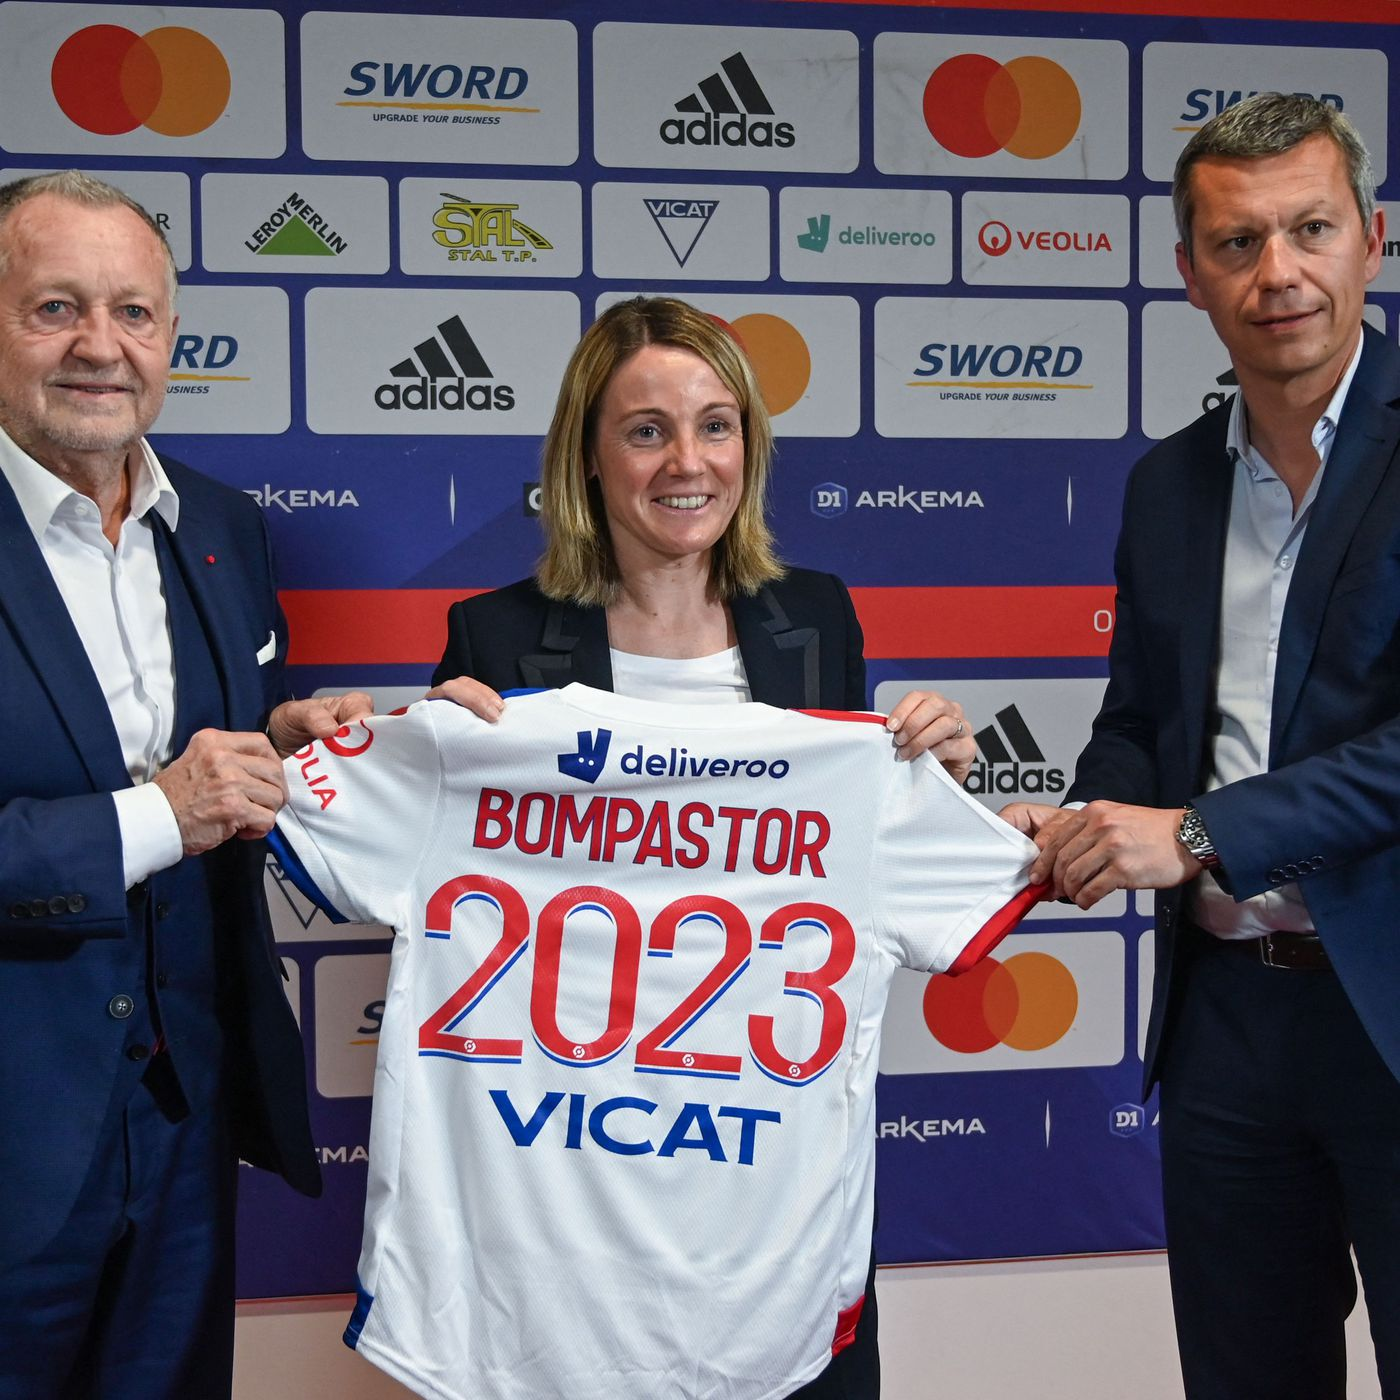 Sonia Bompastor takes the reins at Olympique Lyonnais - Sounder At Heart